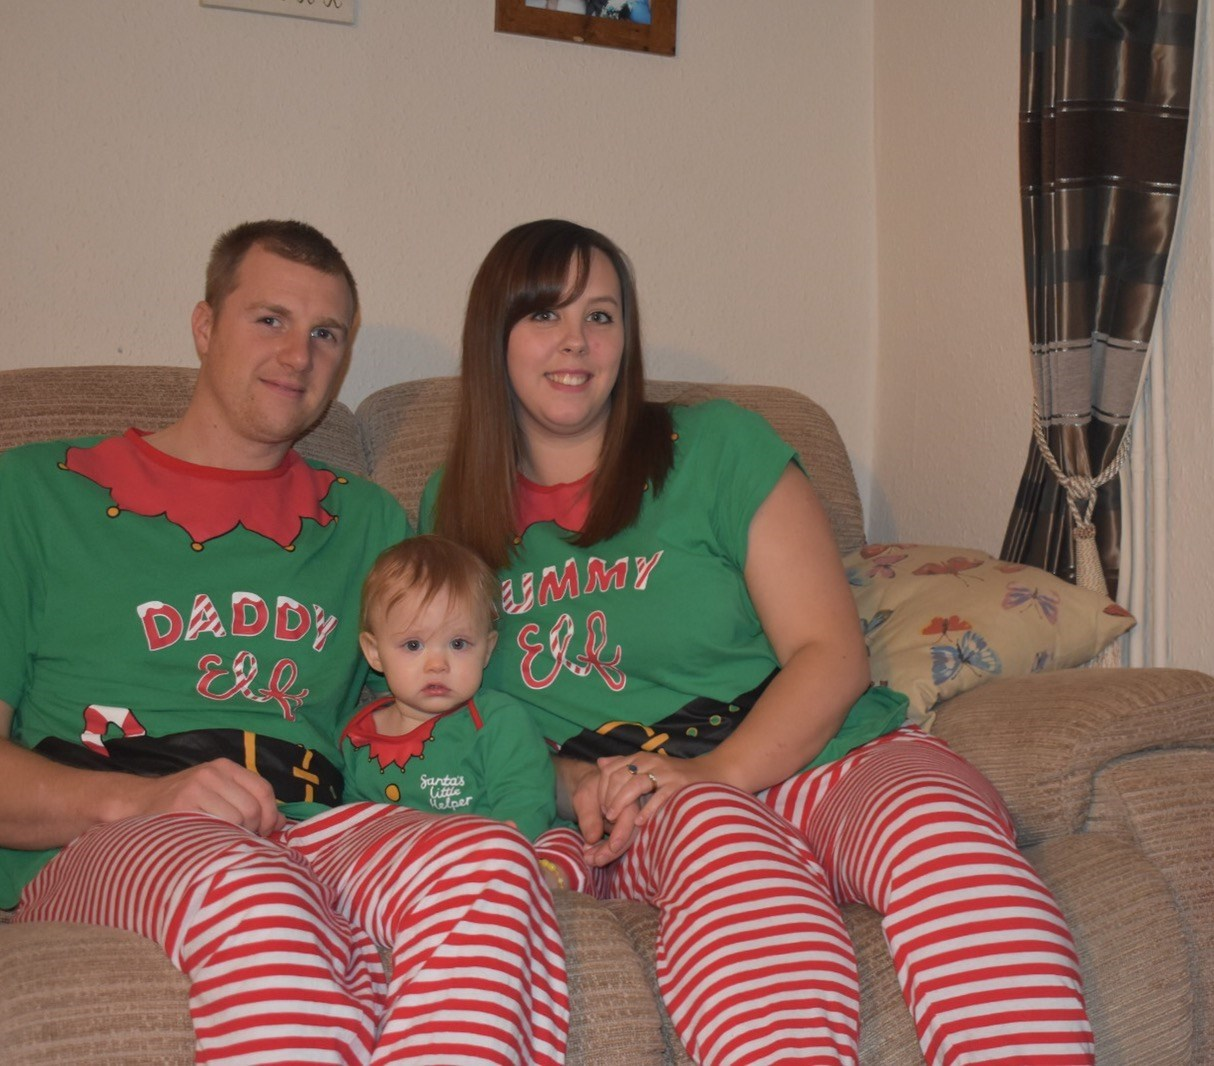 Merry Christmas Eve Daddy! Forever in our hearts my brave, strong Daddy, we Loveand miss you xxx